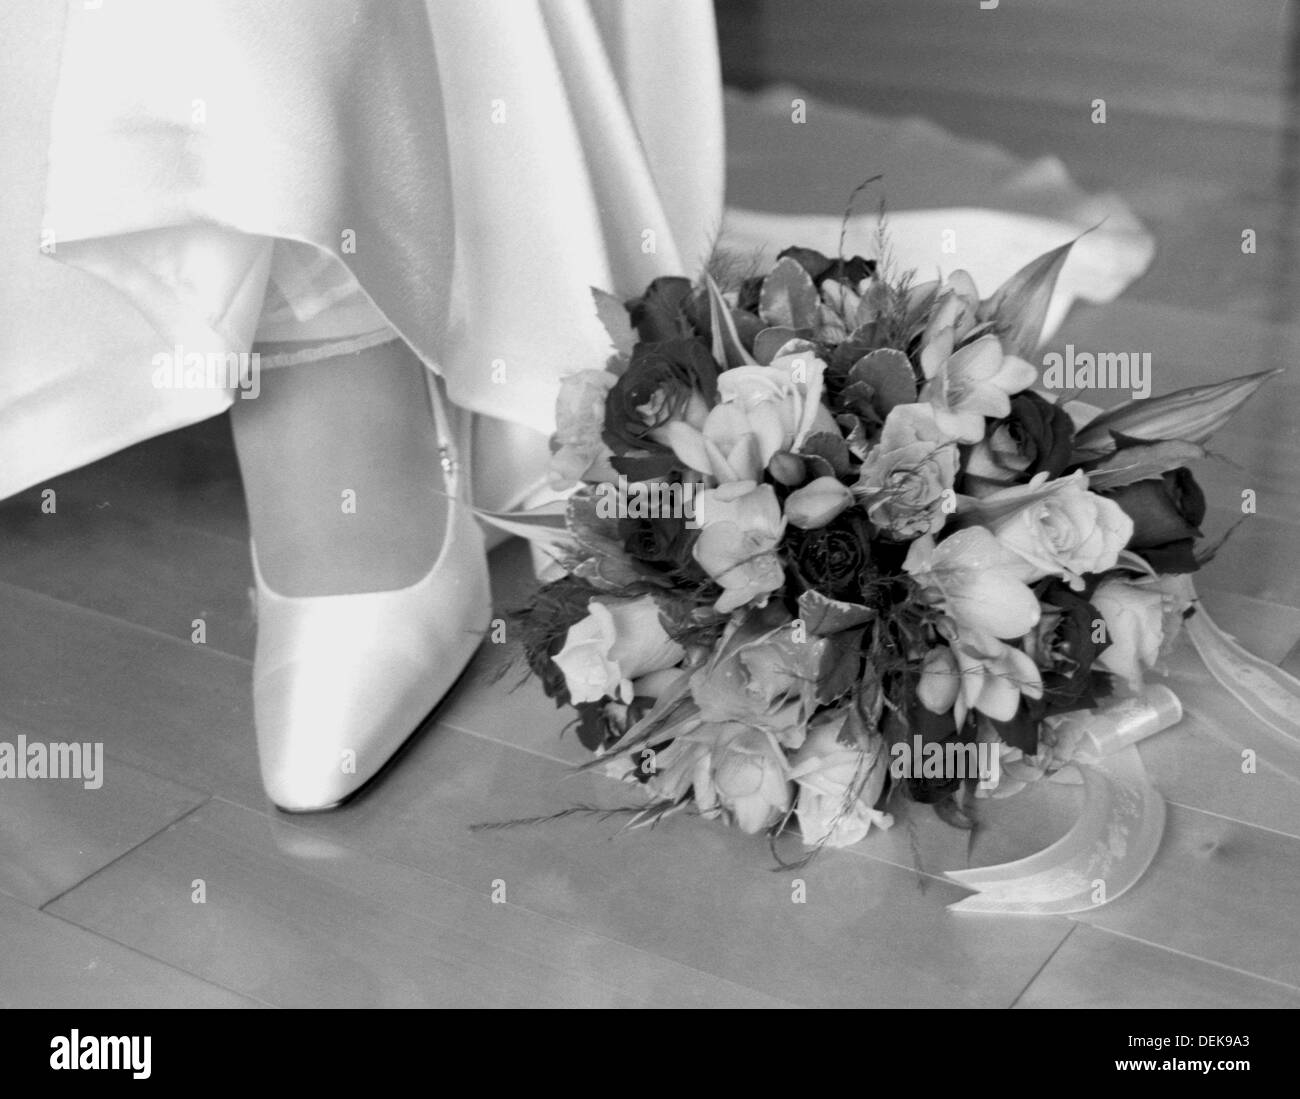 Location shot of wedding flowers & bridal shoes. Vancouver BC Canada - Stock Image